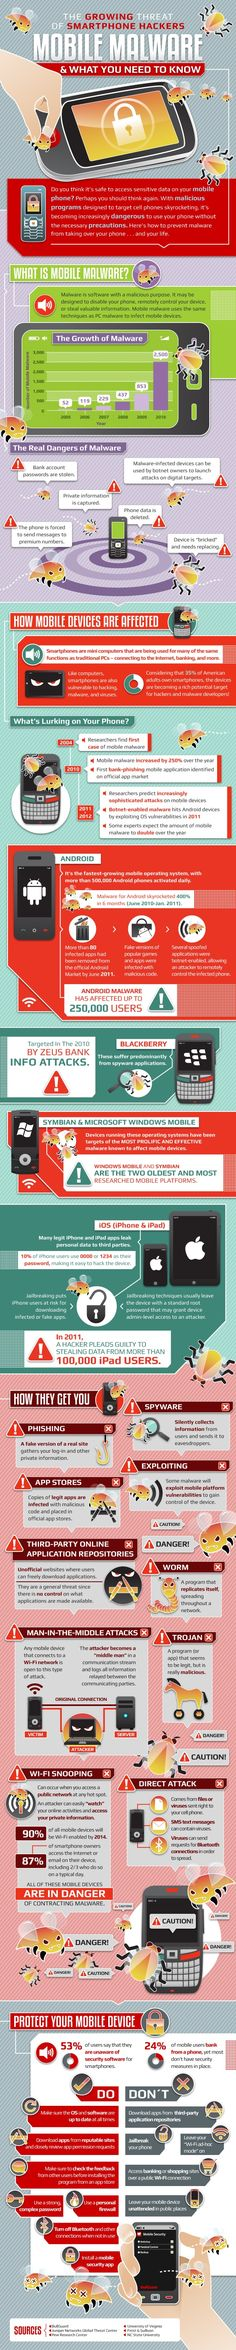 Android phones and malware.  Informaation on other platforms also.